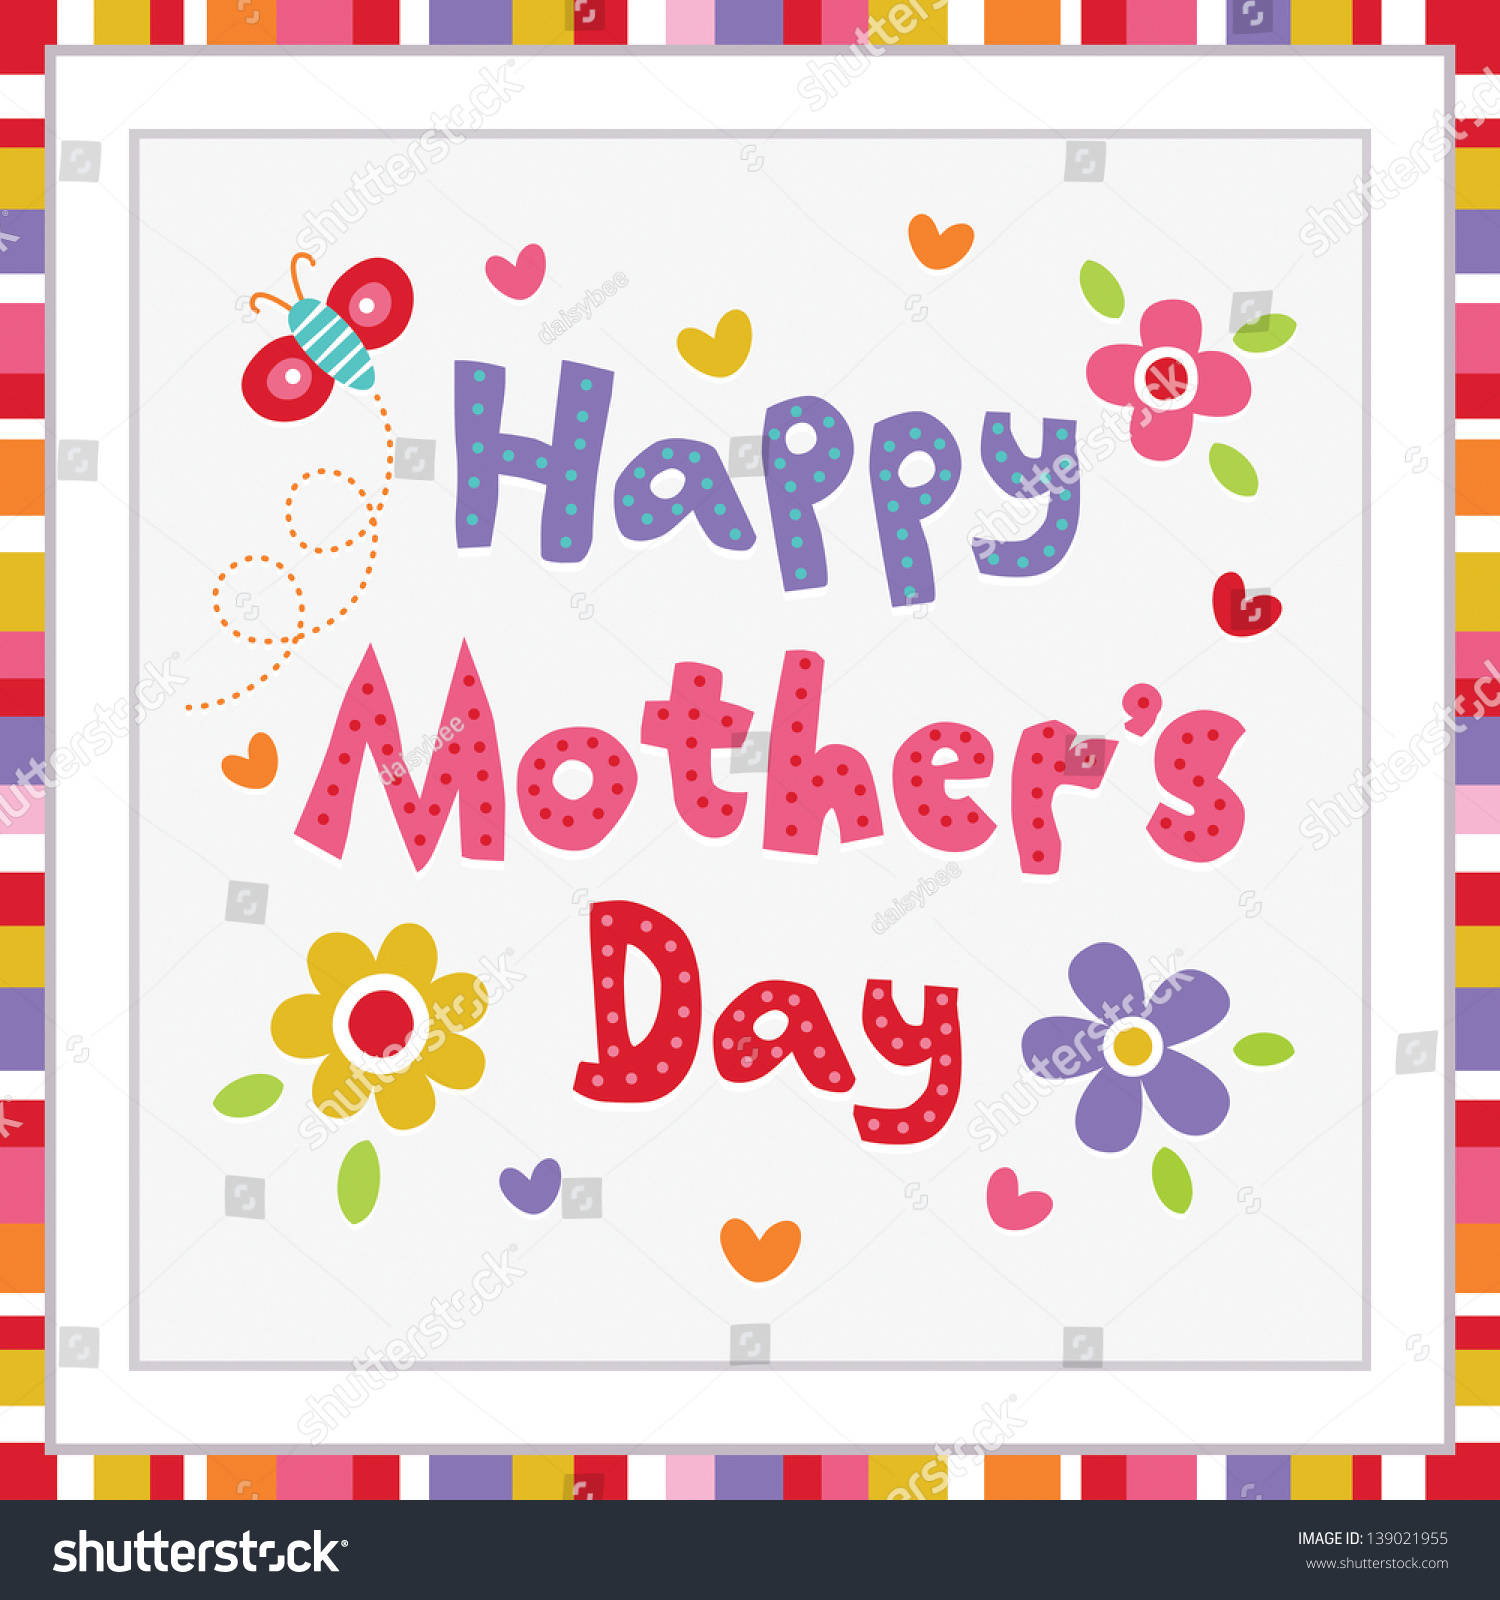 raster happy mothers day card striped stock illustration 139021955 raster happy mothers day card striped stock illustration 139021955